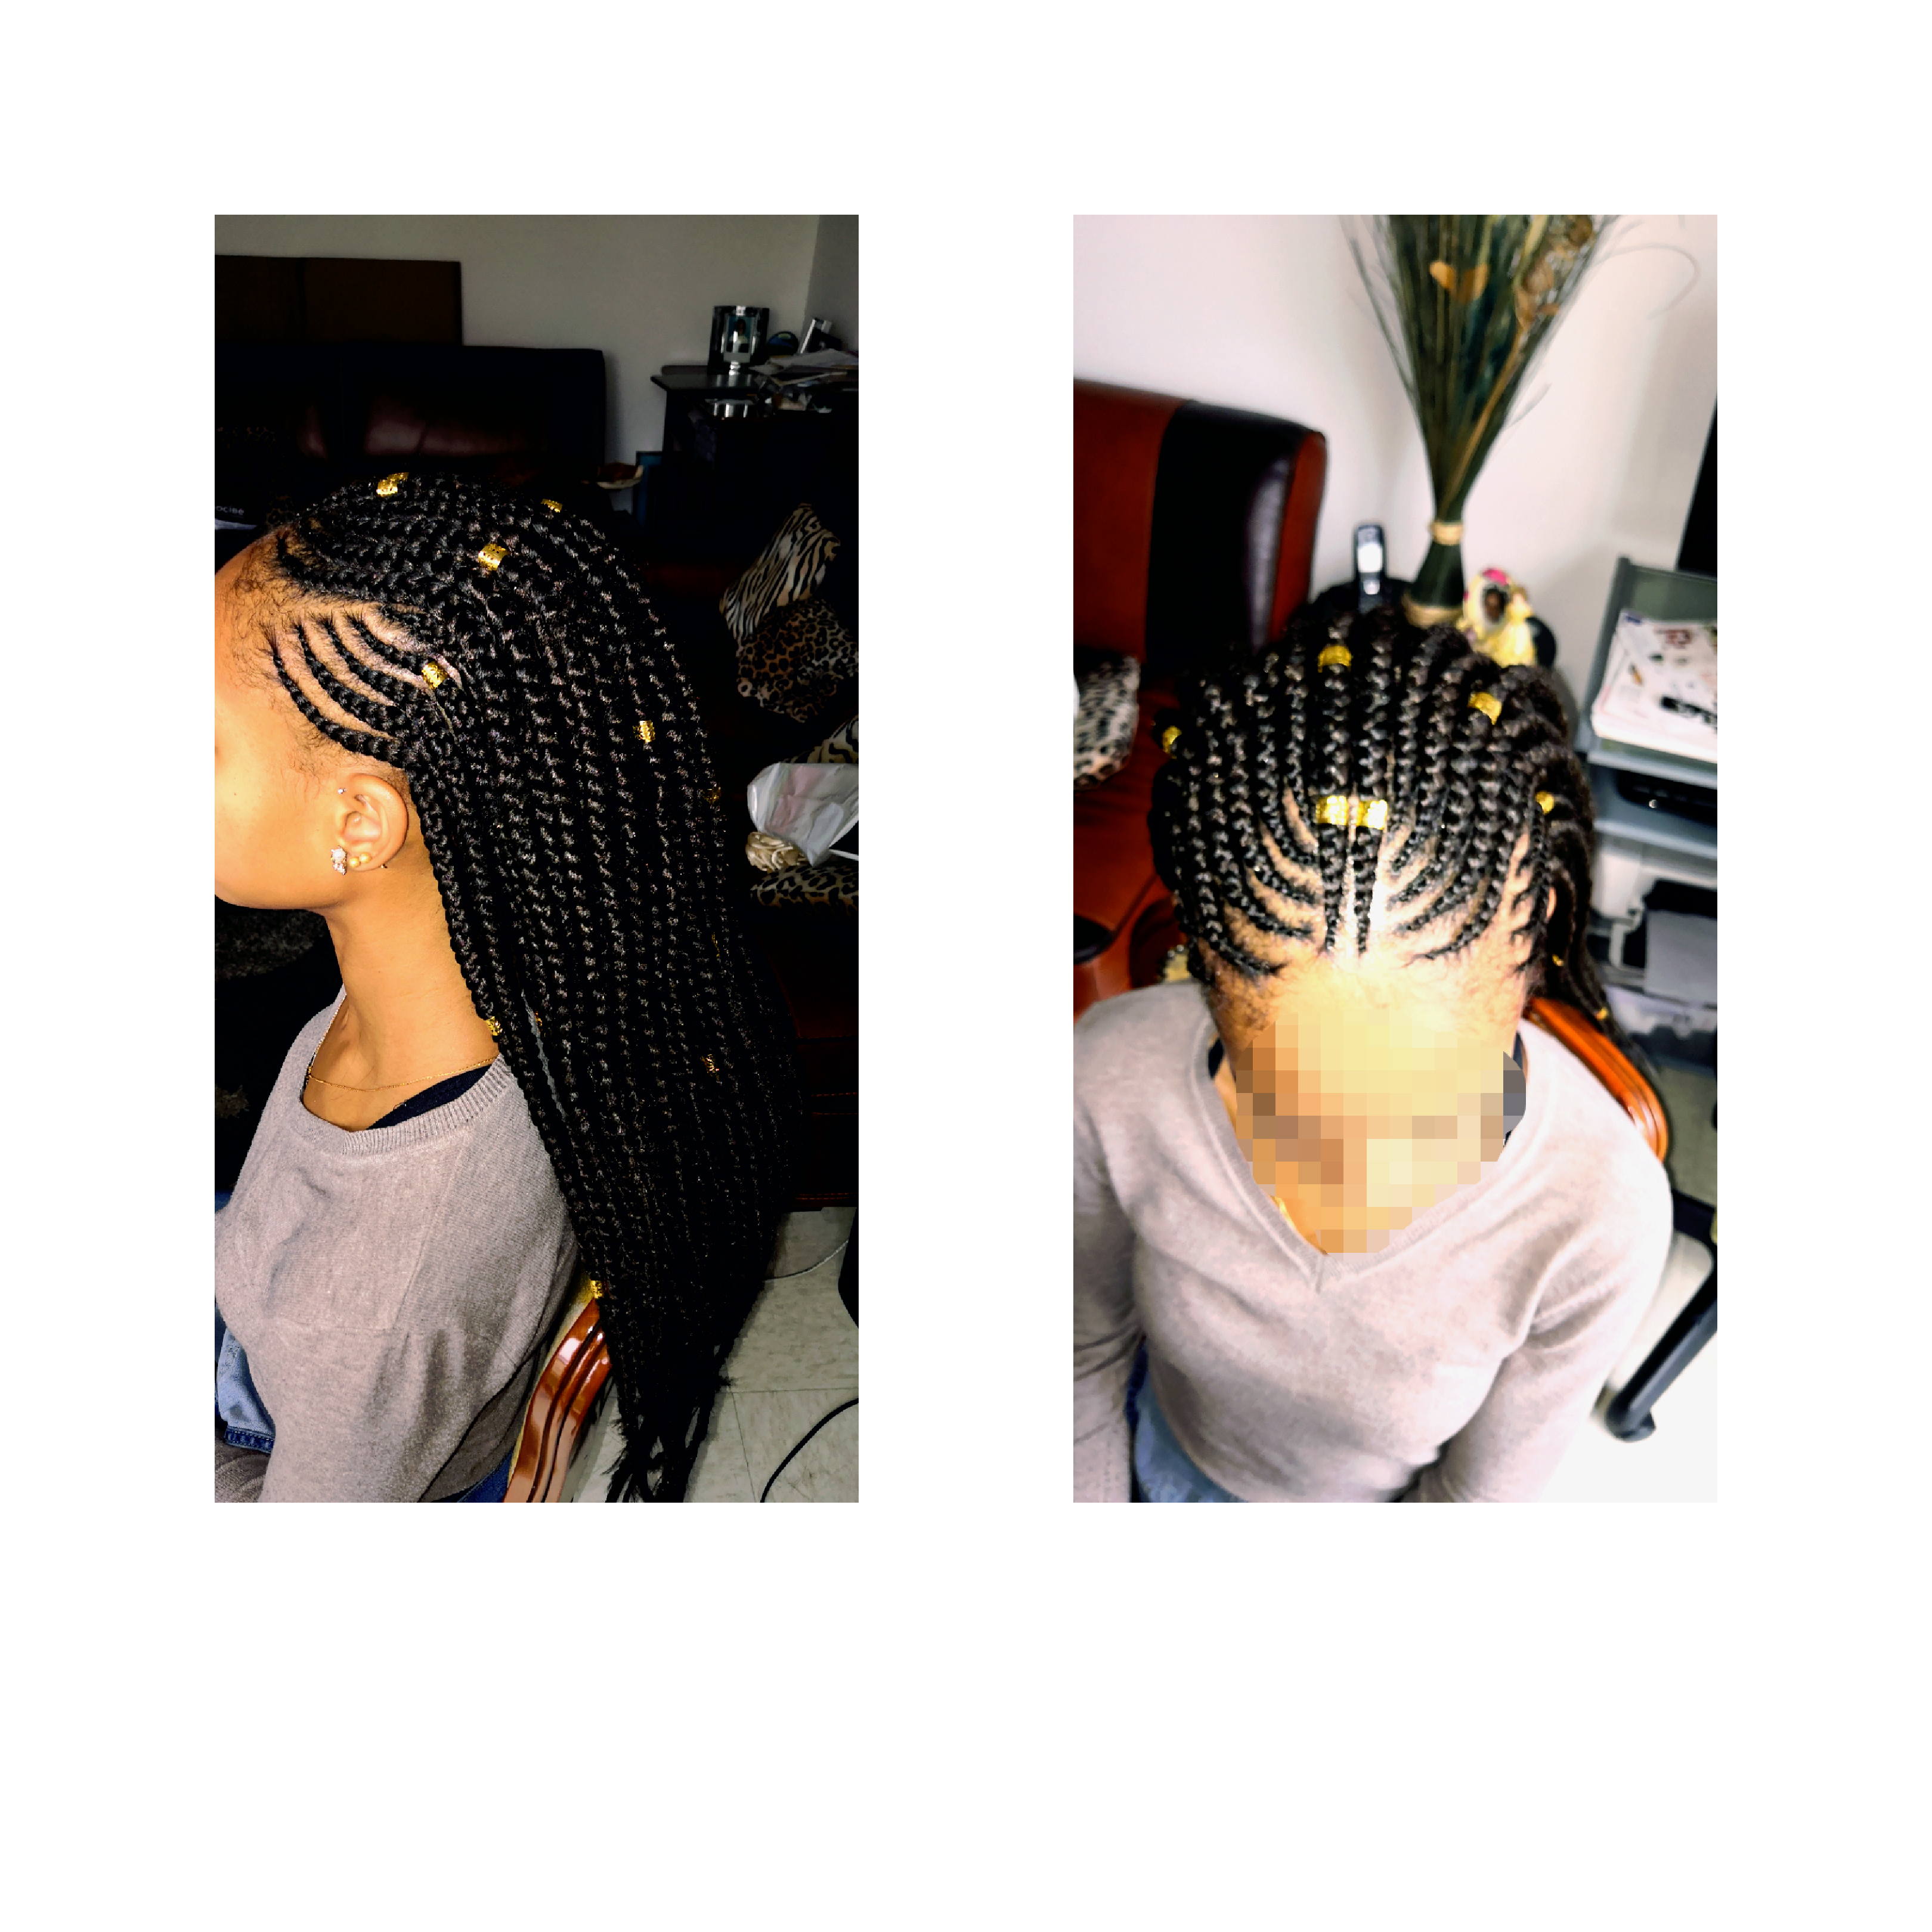 salon de coiffure afro tresse tresses box braids crochet braids vanilles tissages paris 75 77 78 91 92 93 94 95 IZPMTCBM